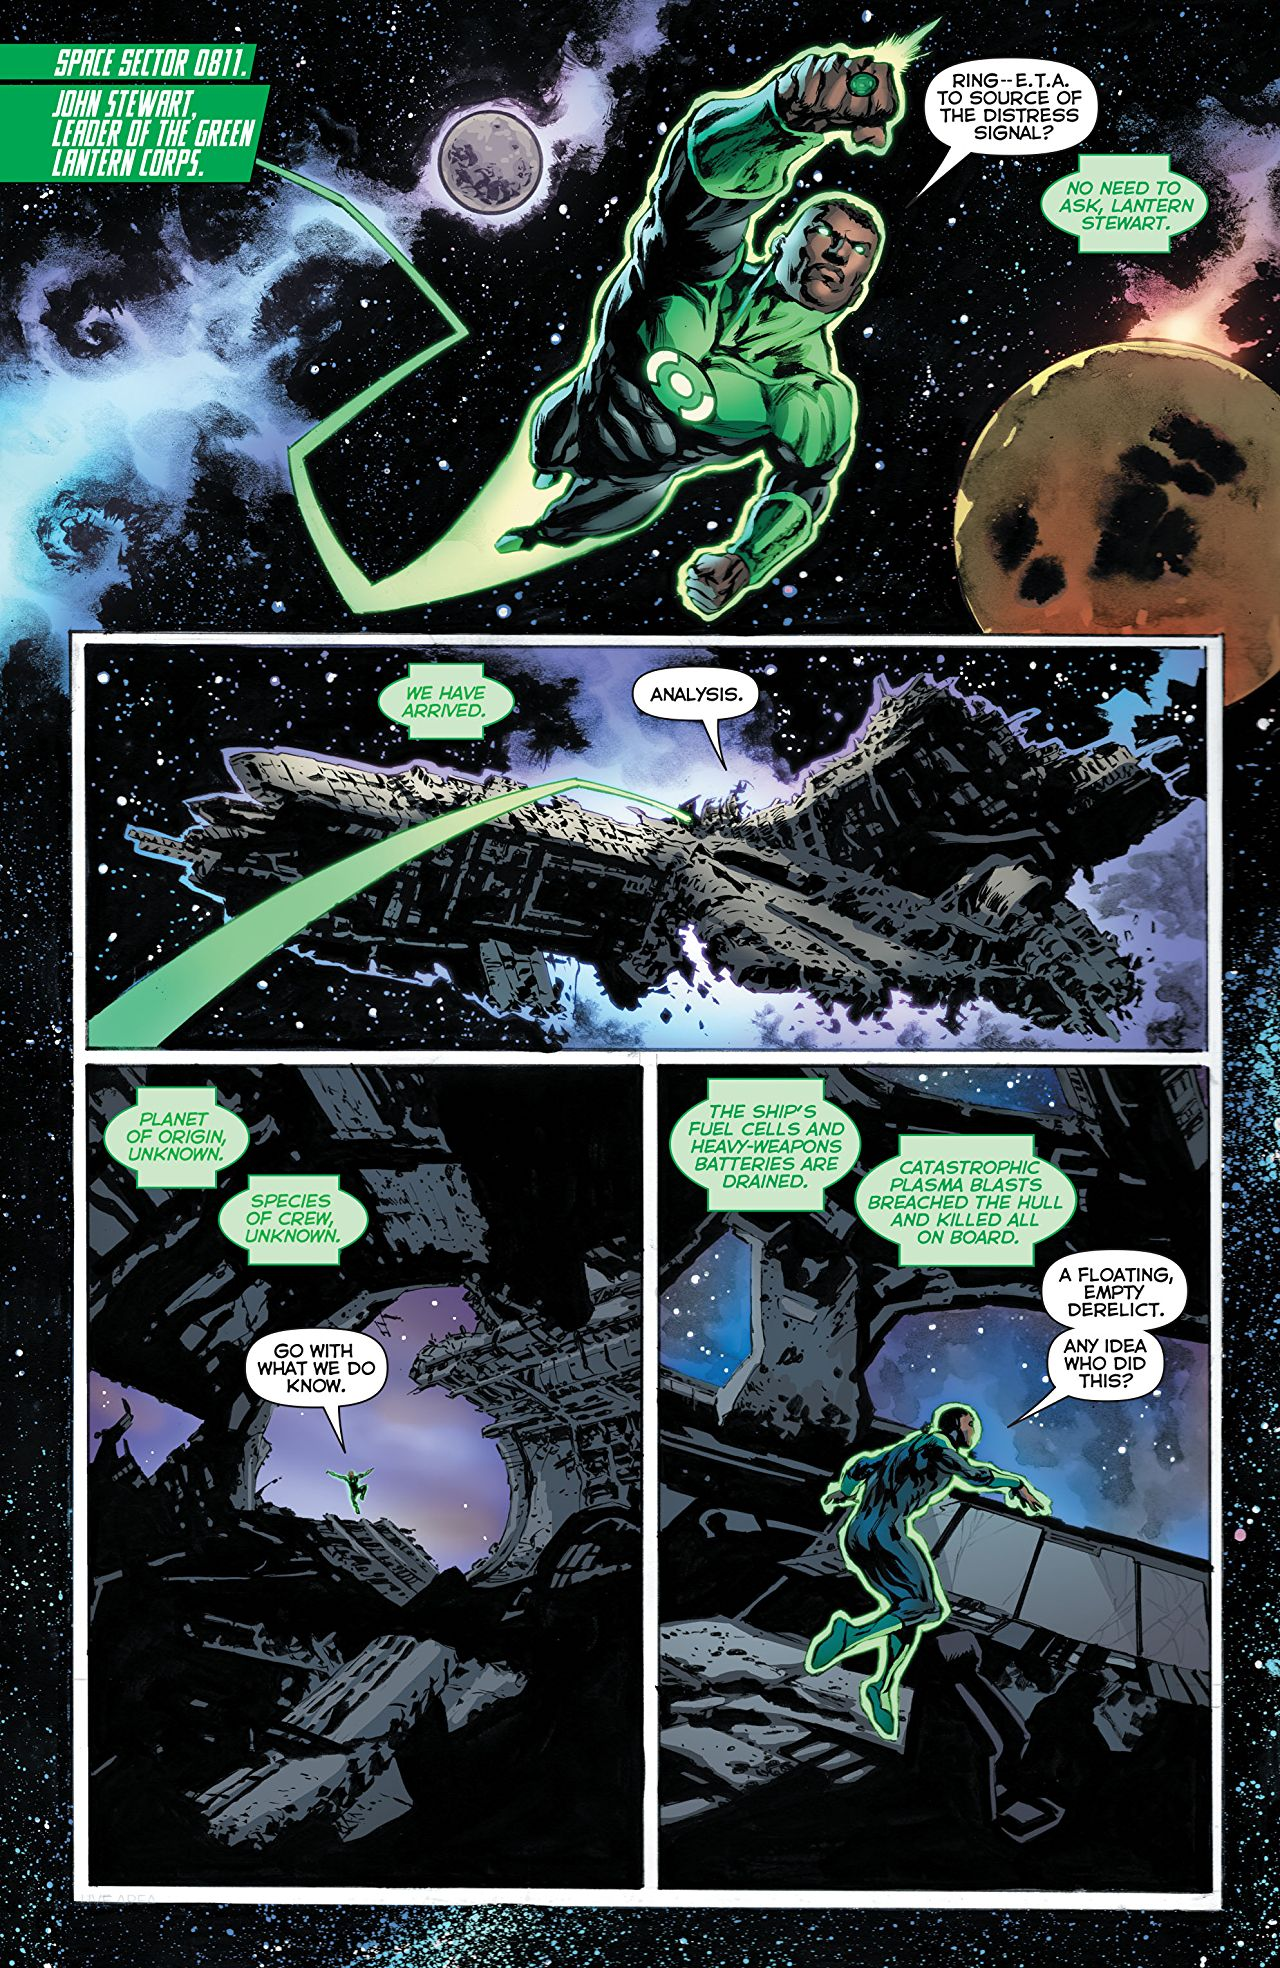 Green Lanterns #50 art by Mike Perkins and Andy Troy